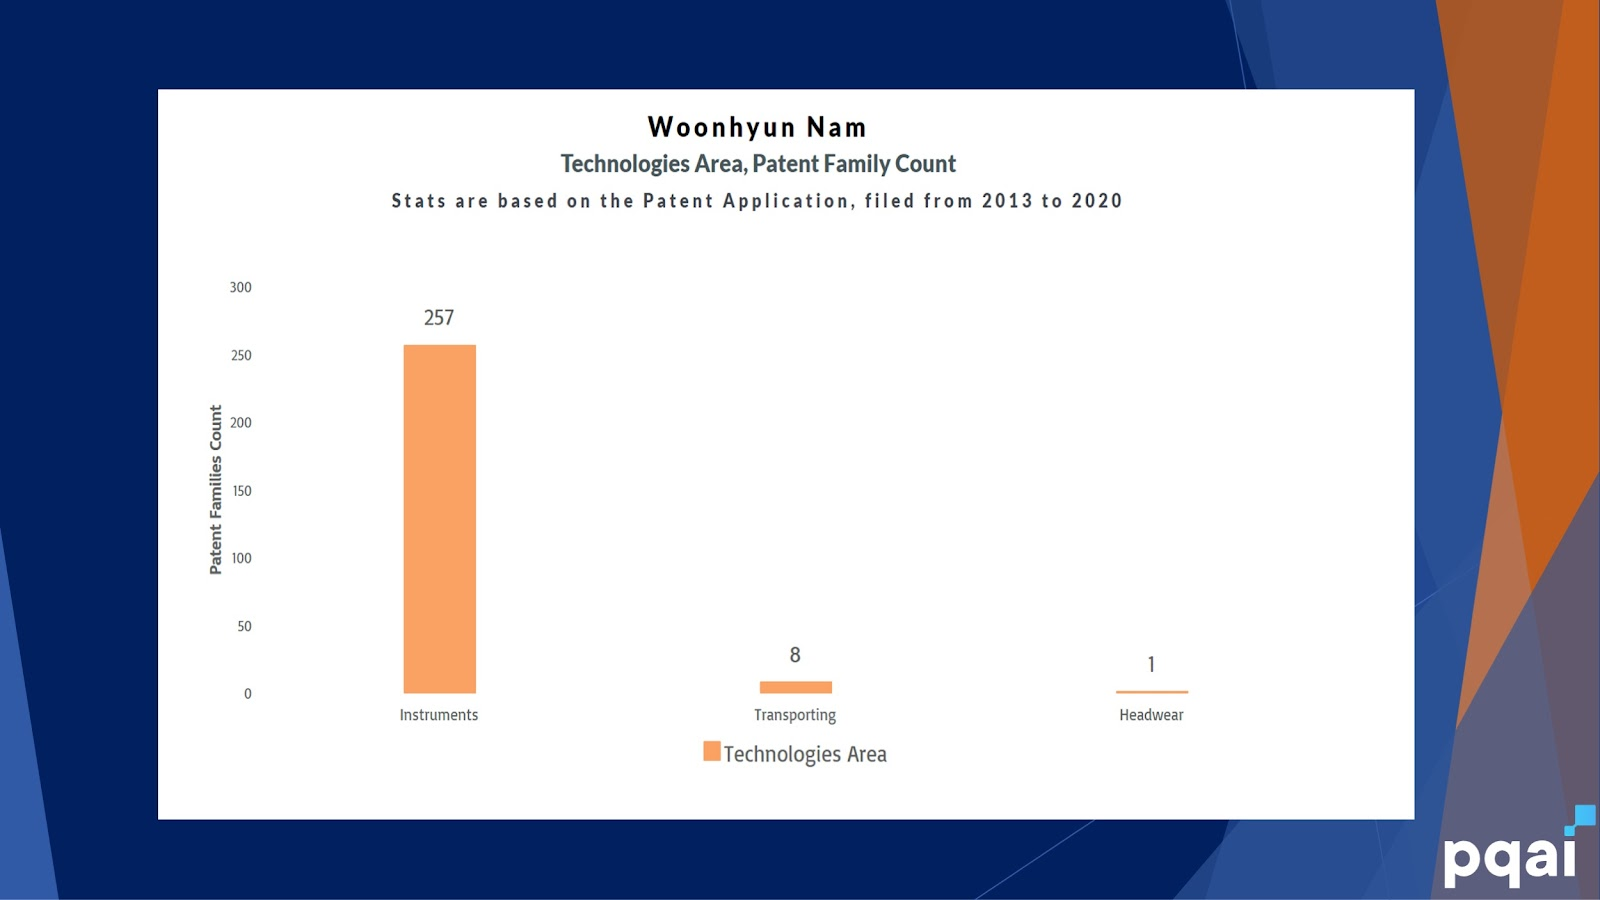 Woonhyun Nam - Technology Area Patent famility count